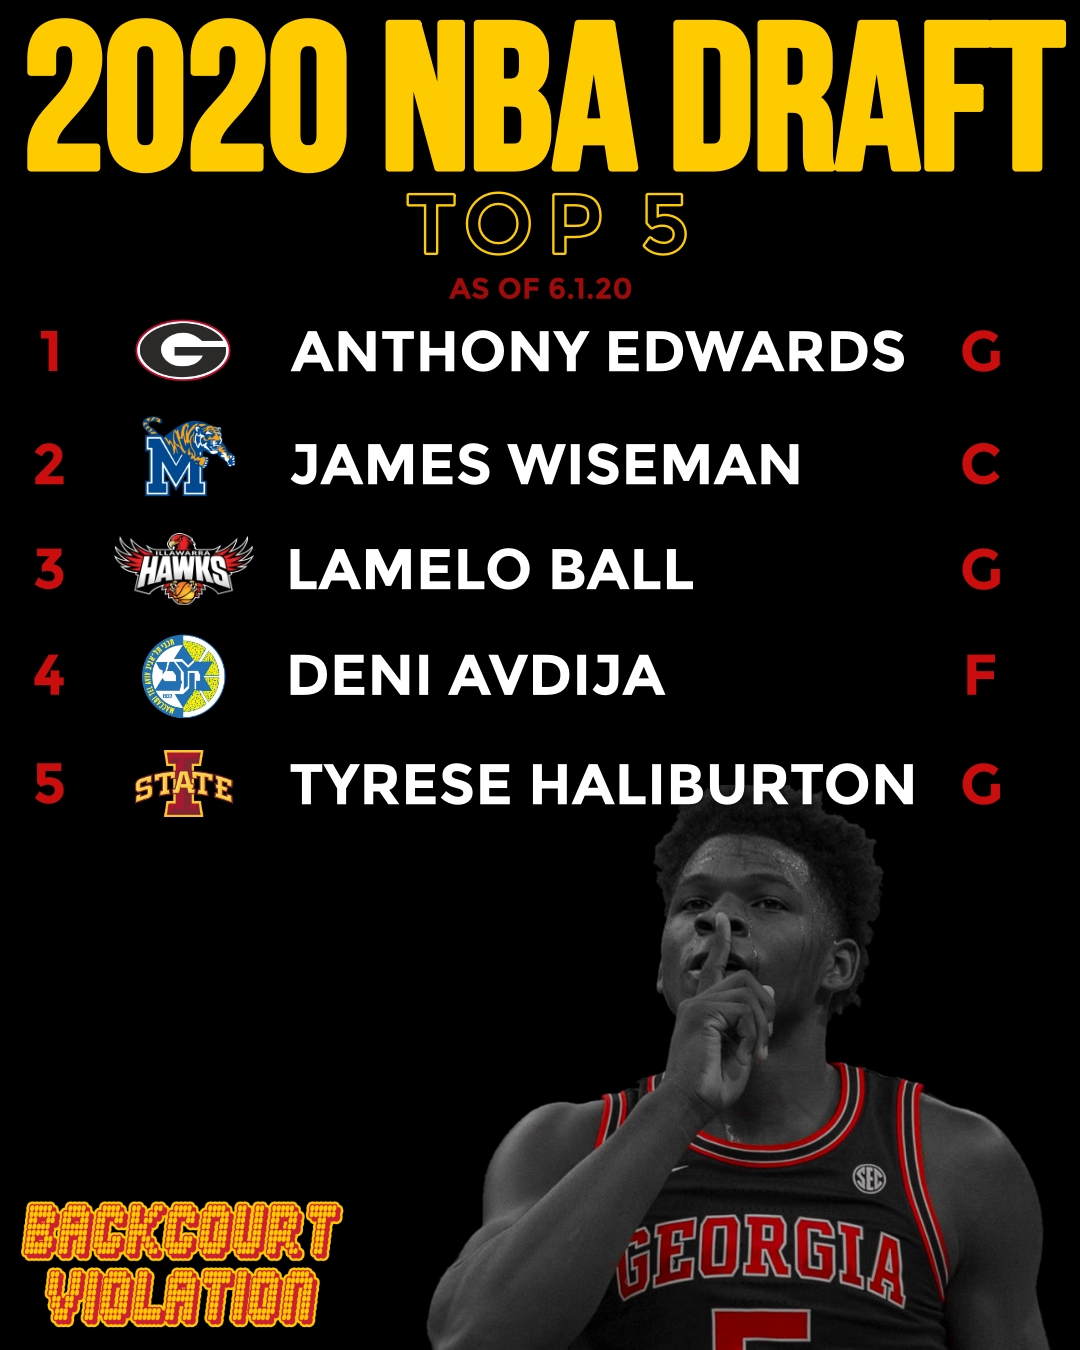 NBA Draft 2020 Top 5